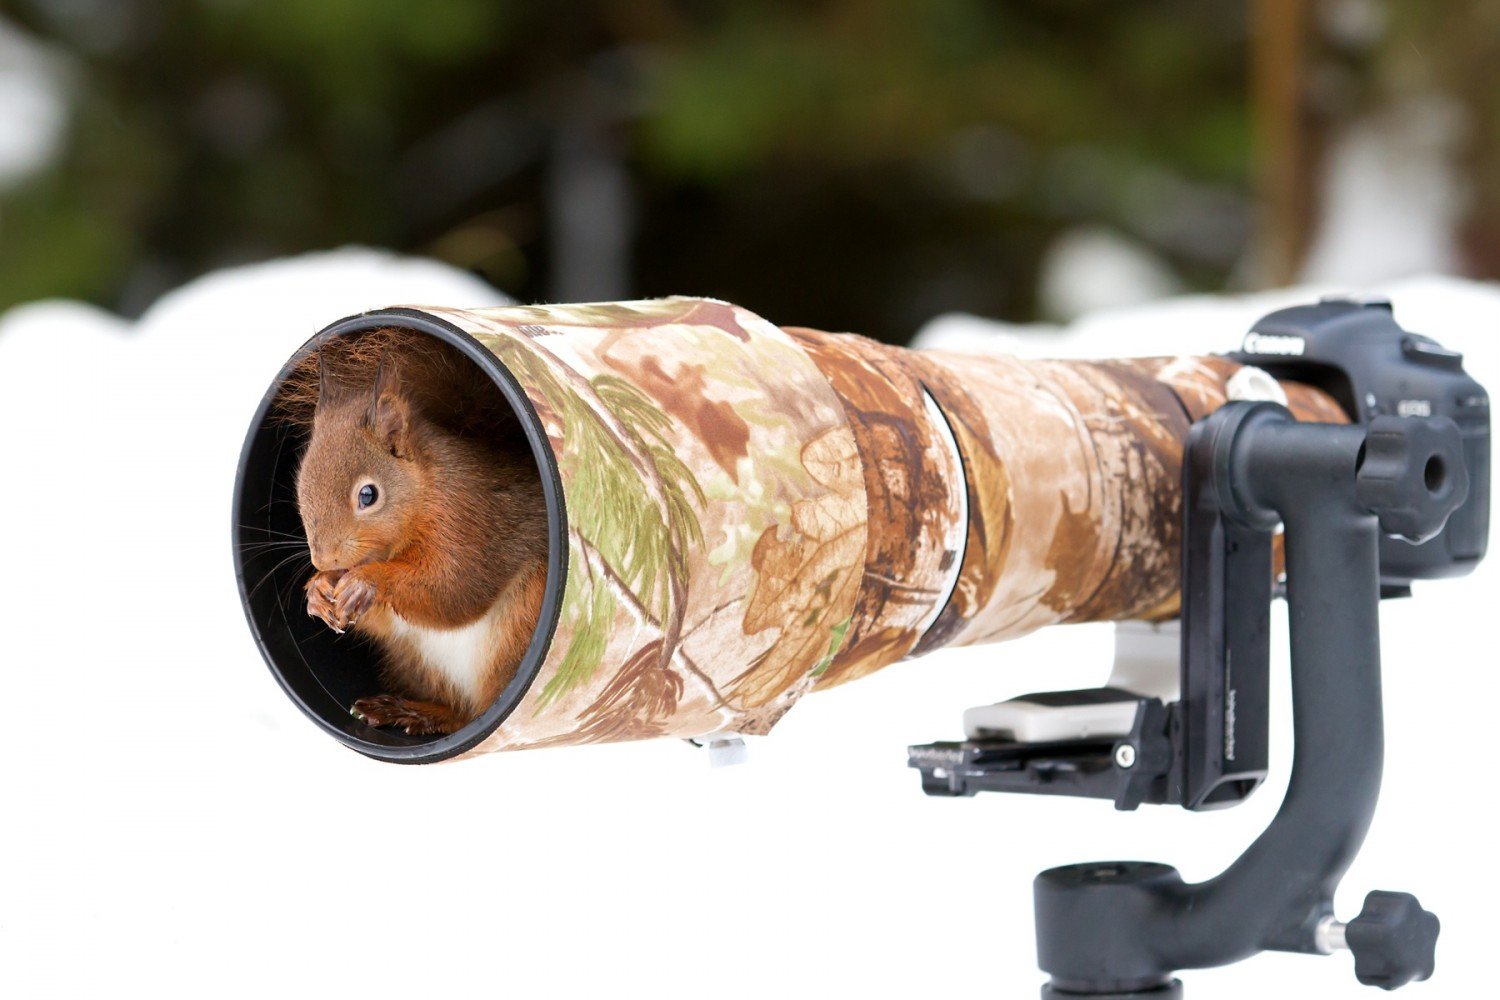 Literal Wildlife Photographers: 19 Photos of Animals Getting Cozy with Camera Gear